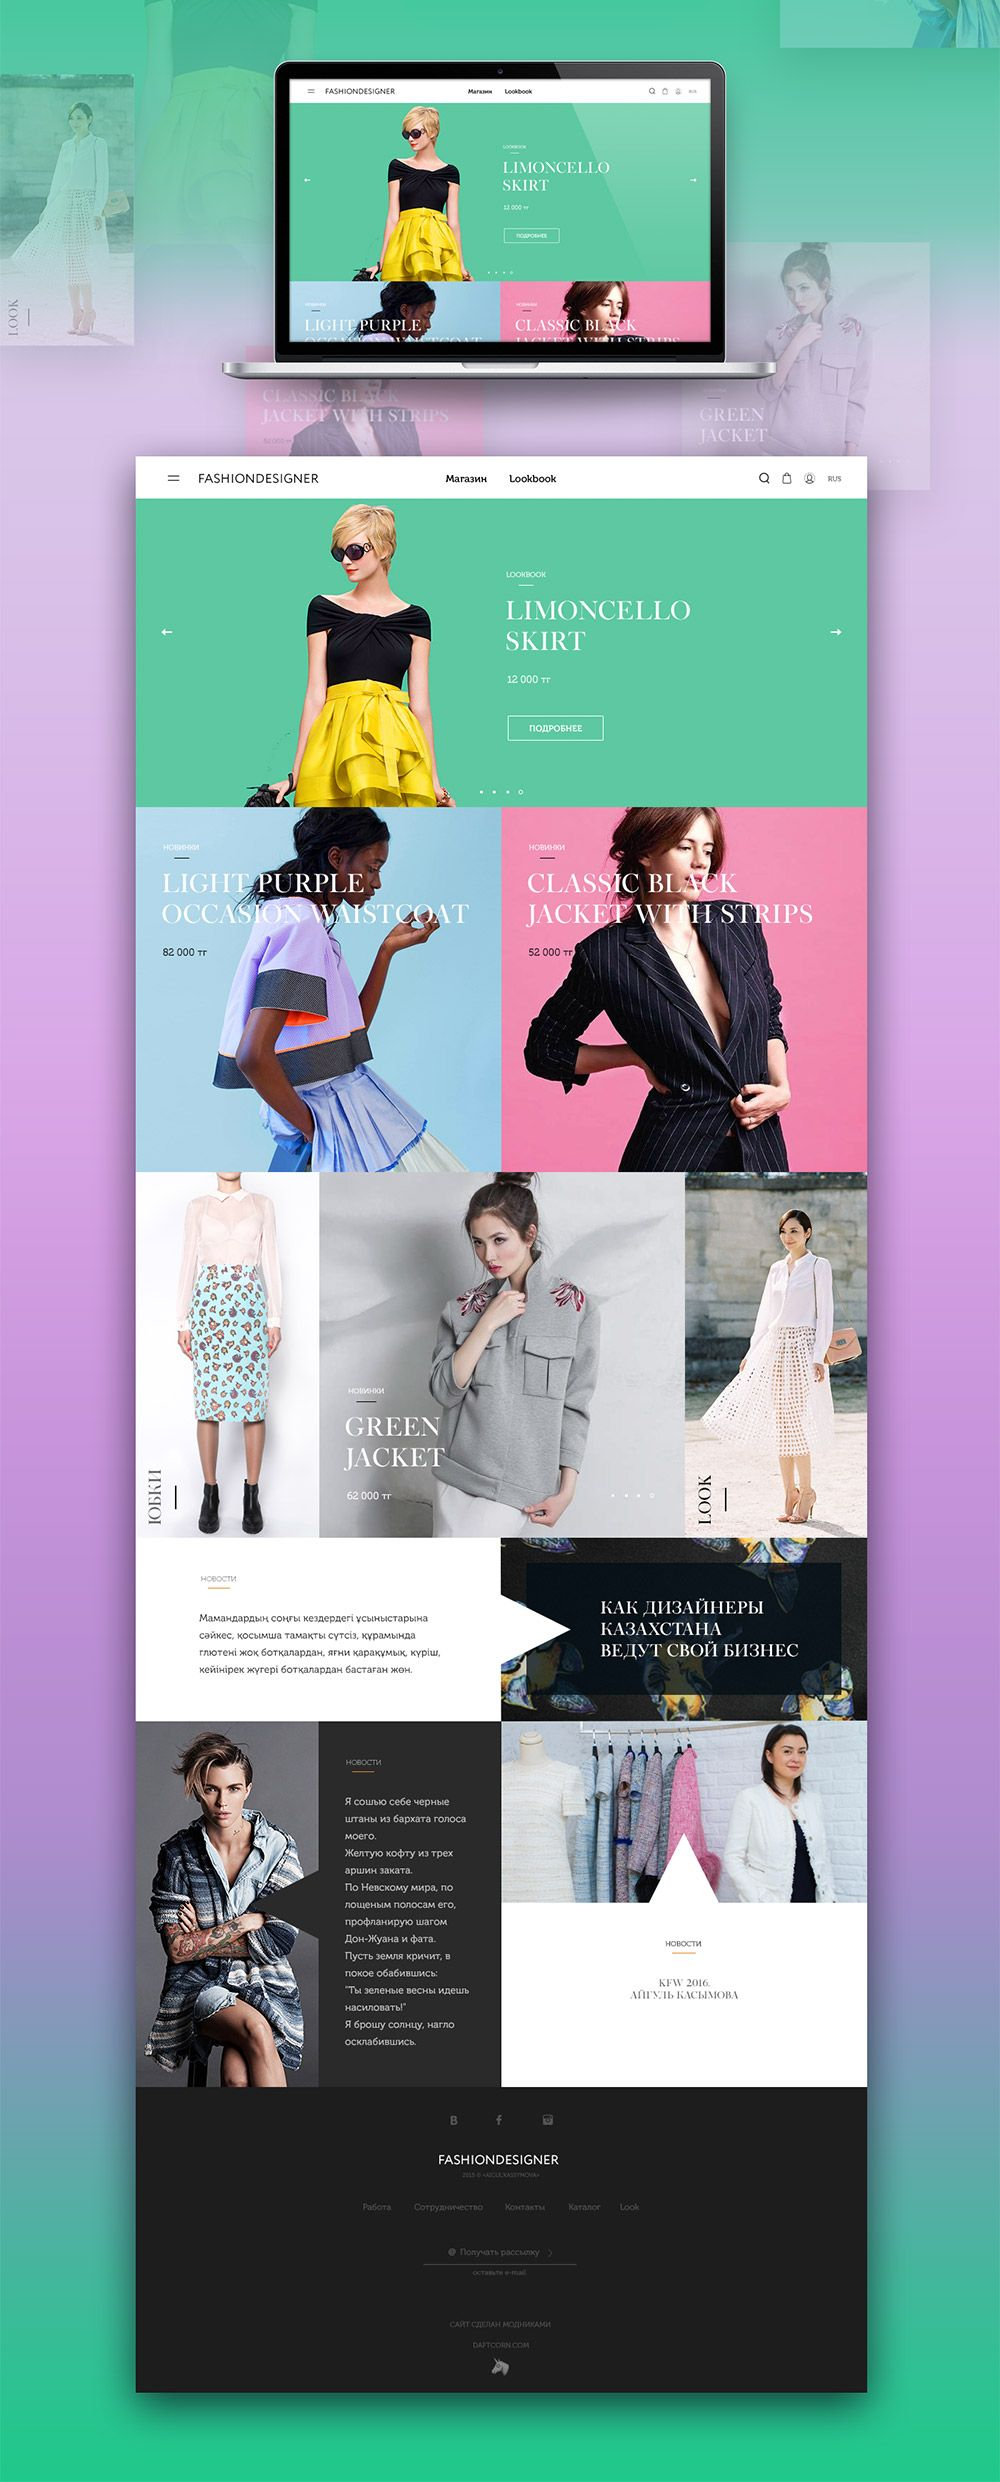 Awesome fashion store website template free psd download fashion awesome fashion store website template free psd download fashion store website template free psd this is a online shopping store ecommerce template psd maxwellsz